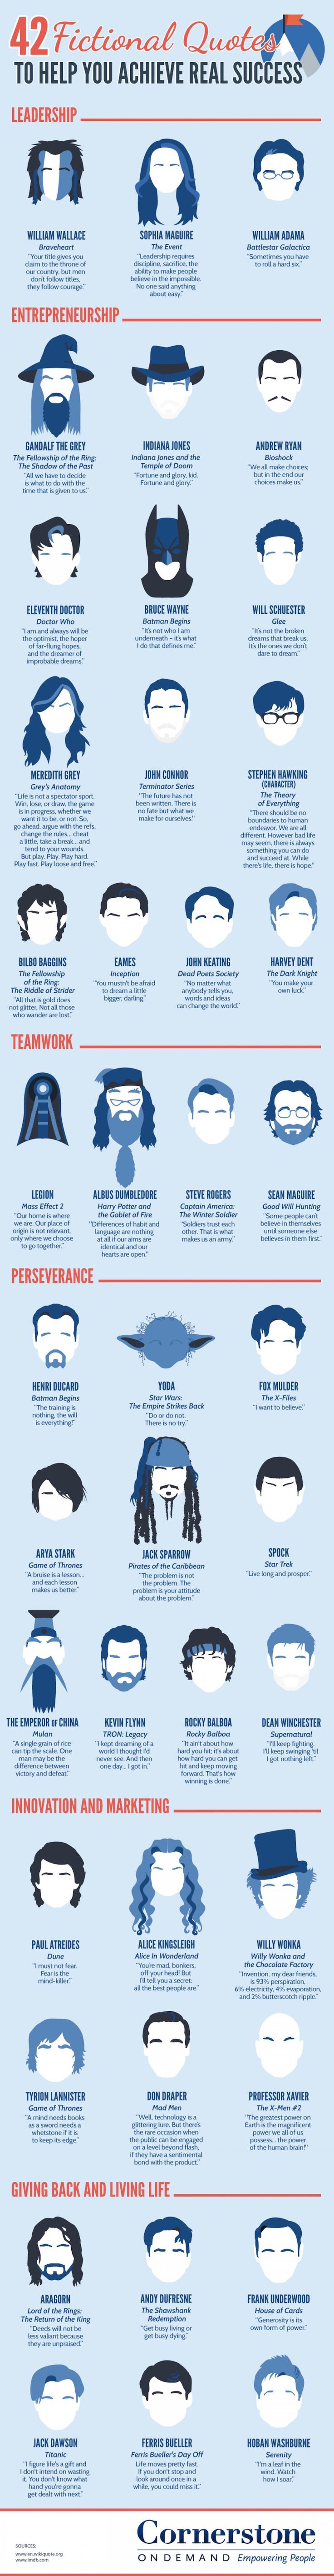 Inspiring quotes from books, comics, and movies #infographic